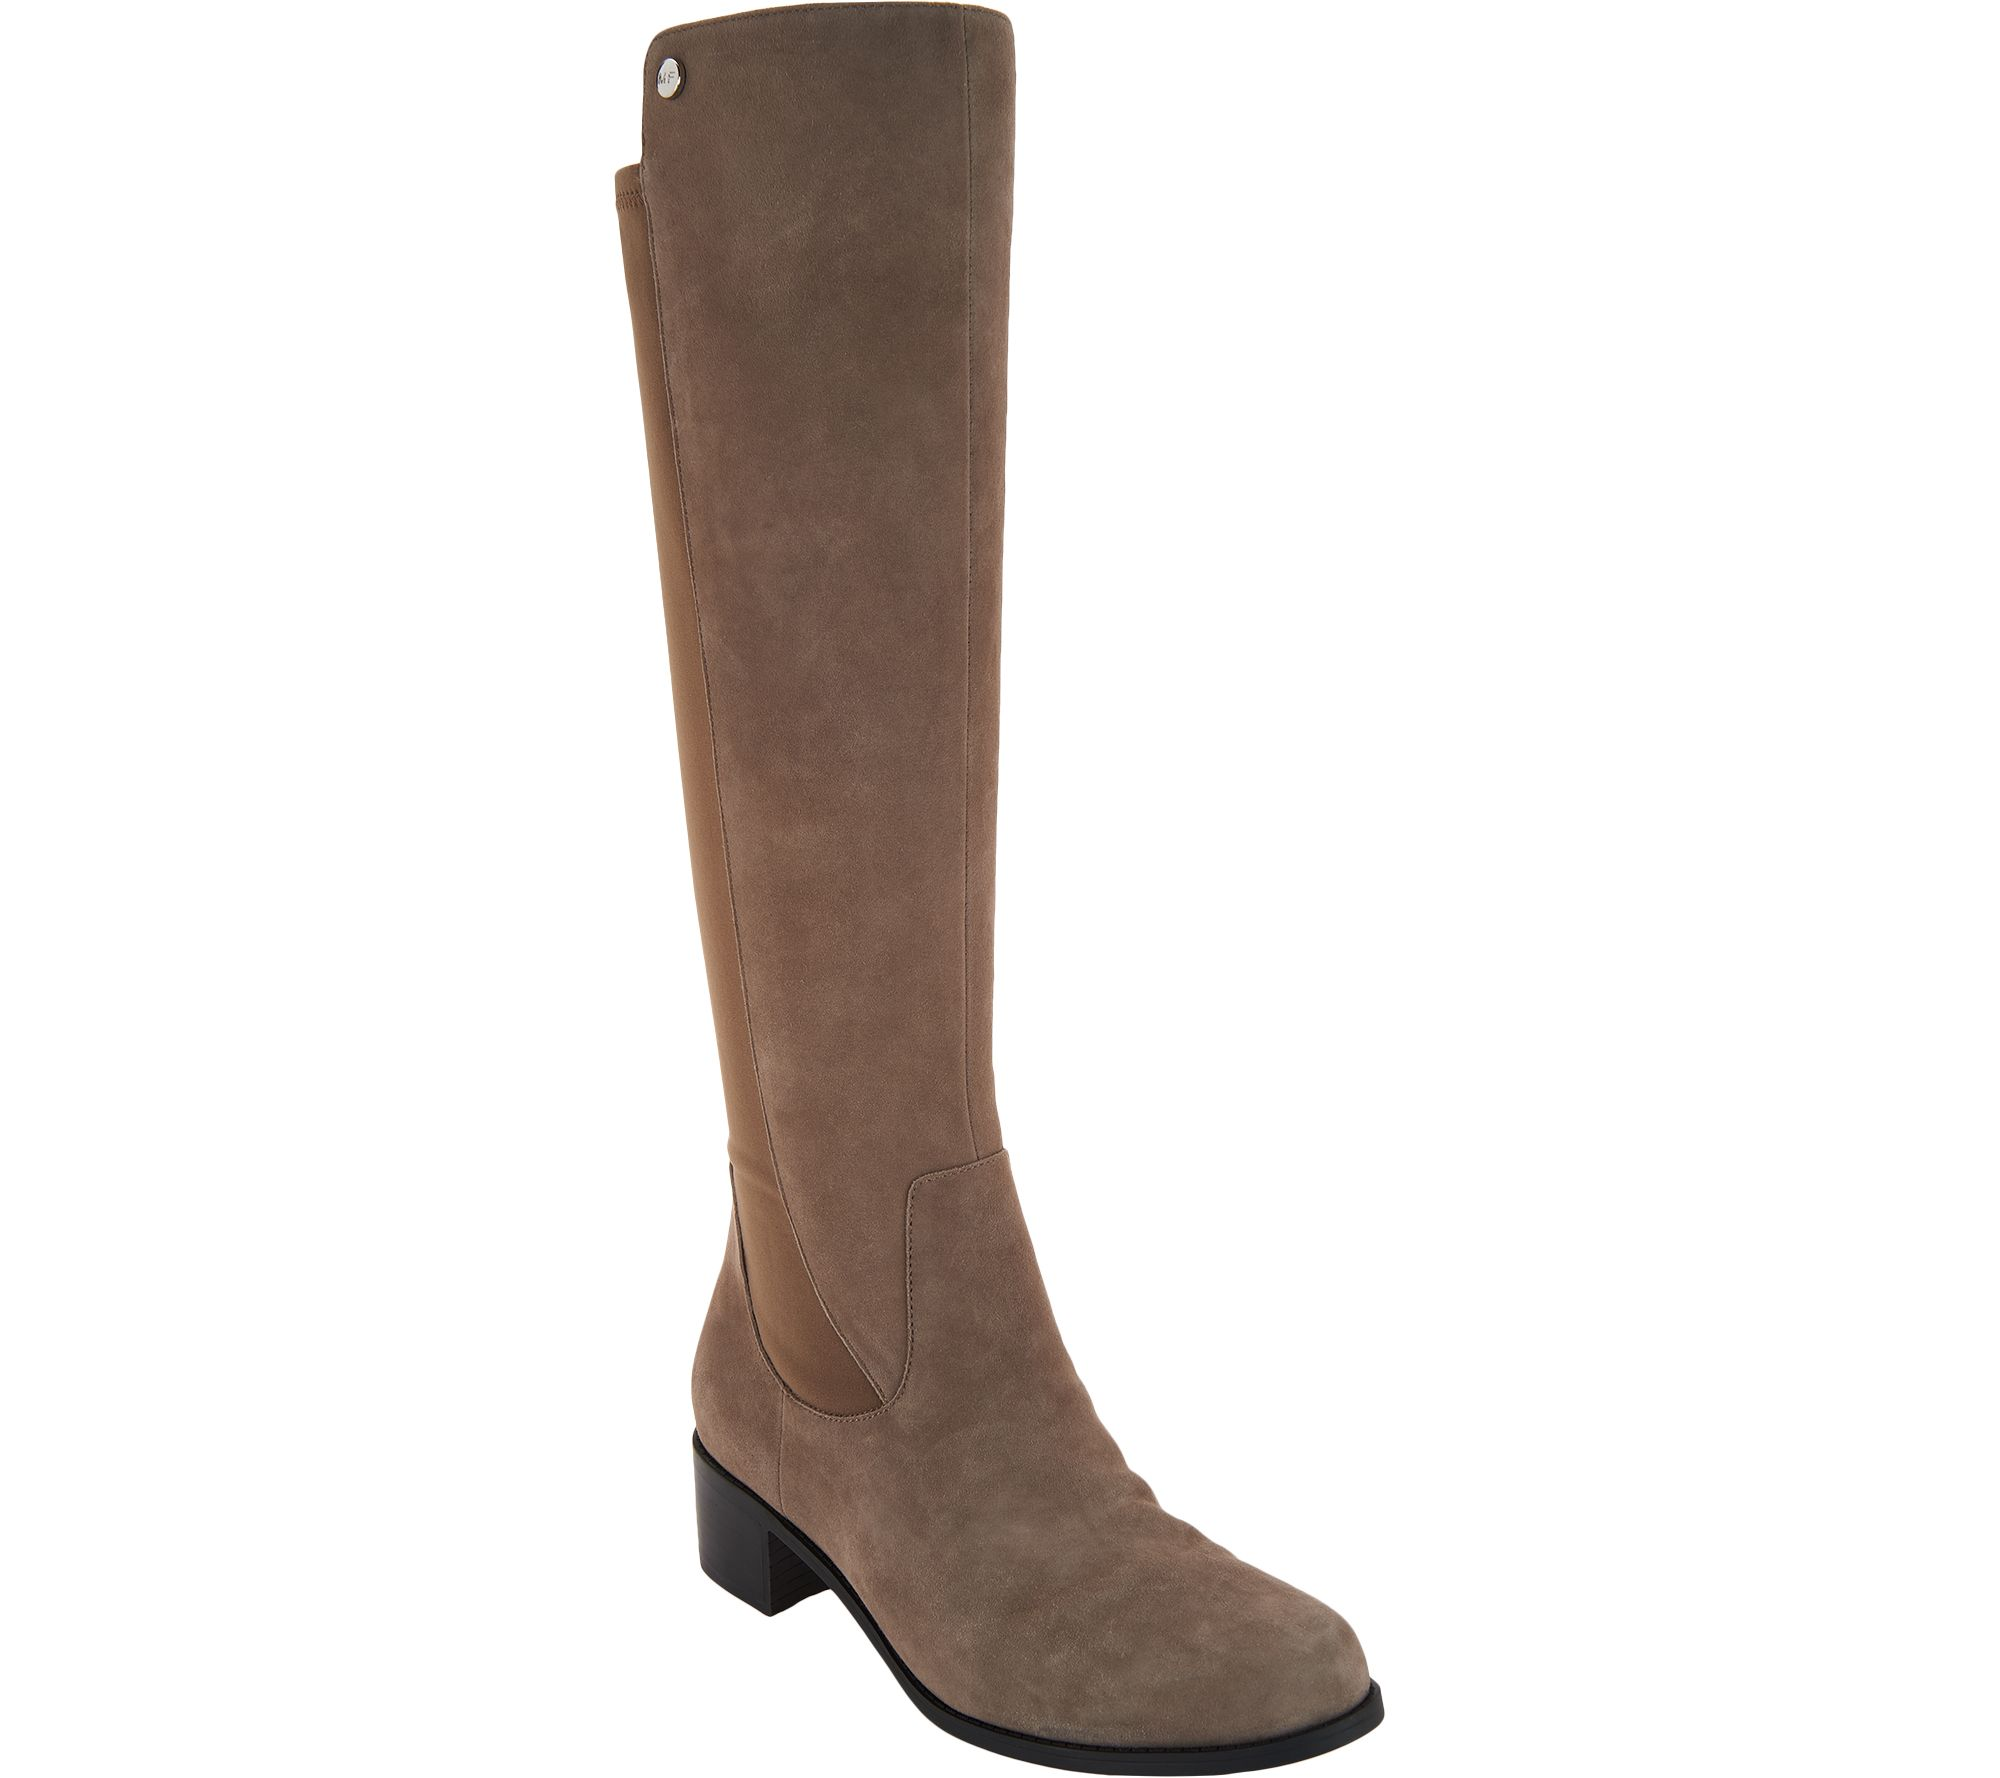 0cdd783a26f Marc Fisher Wide Calf Leather Tall Shaft Boots - Incept — QVC.com